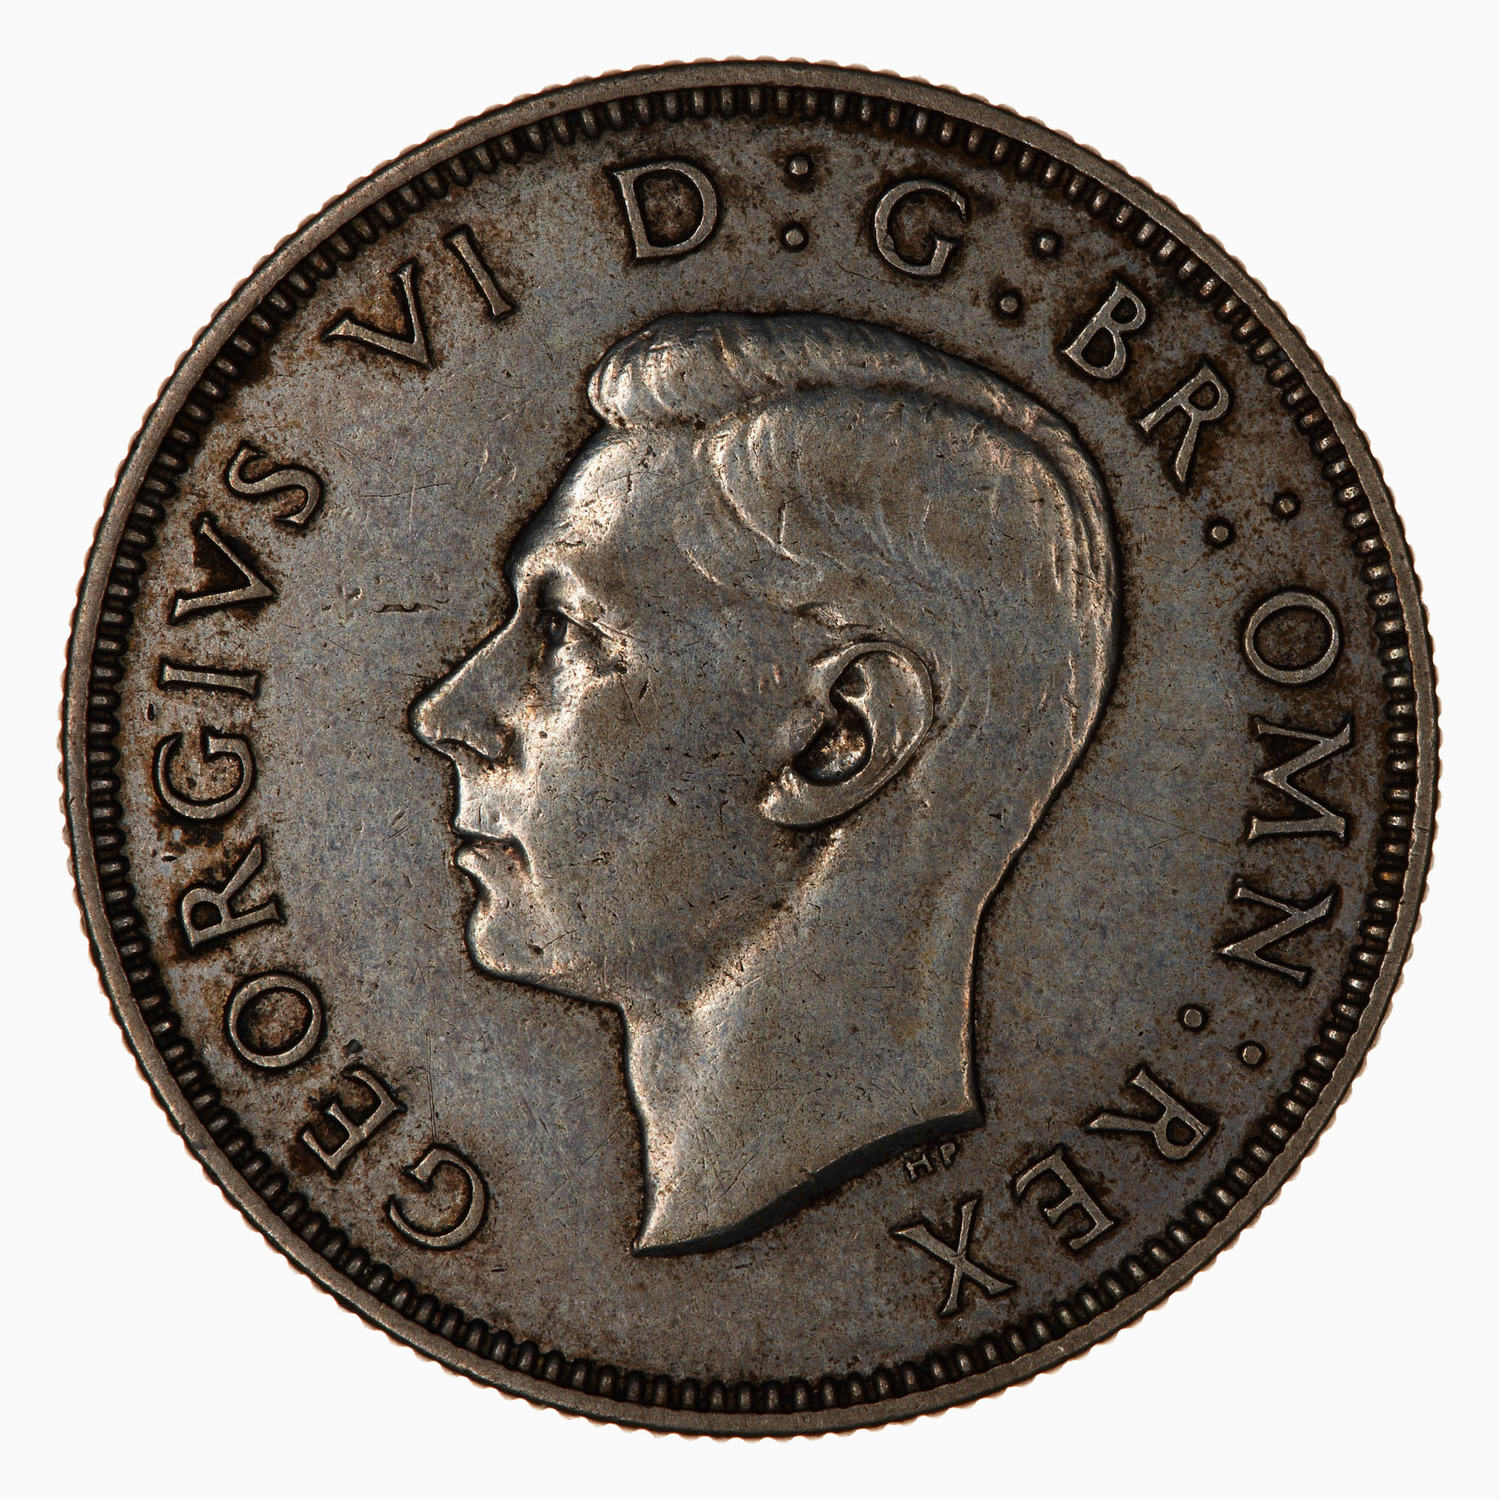 Florin George VI (Silver): Photo Coin - Florin (2 Shillings), George VI, Great Britain, 1941